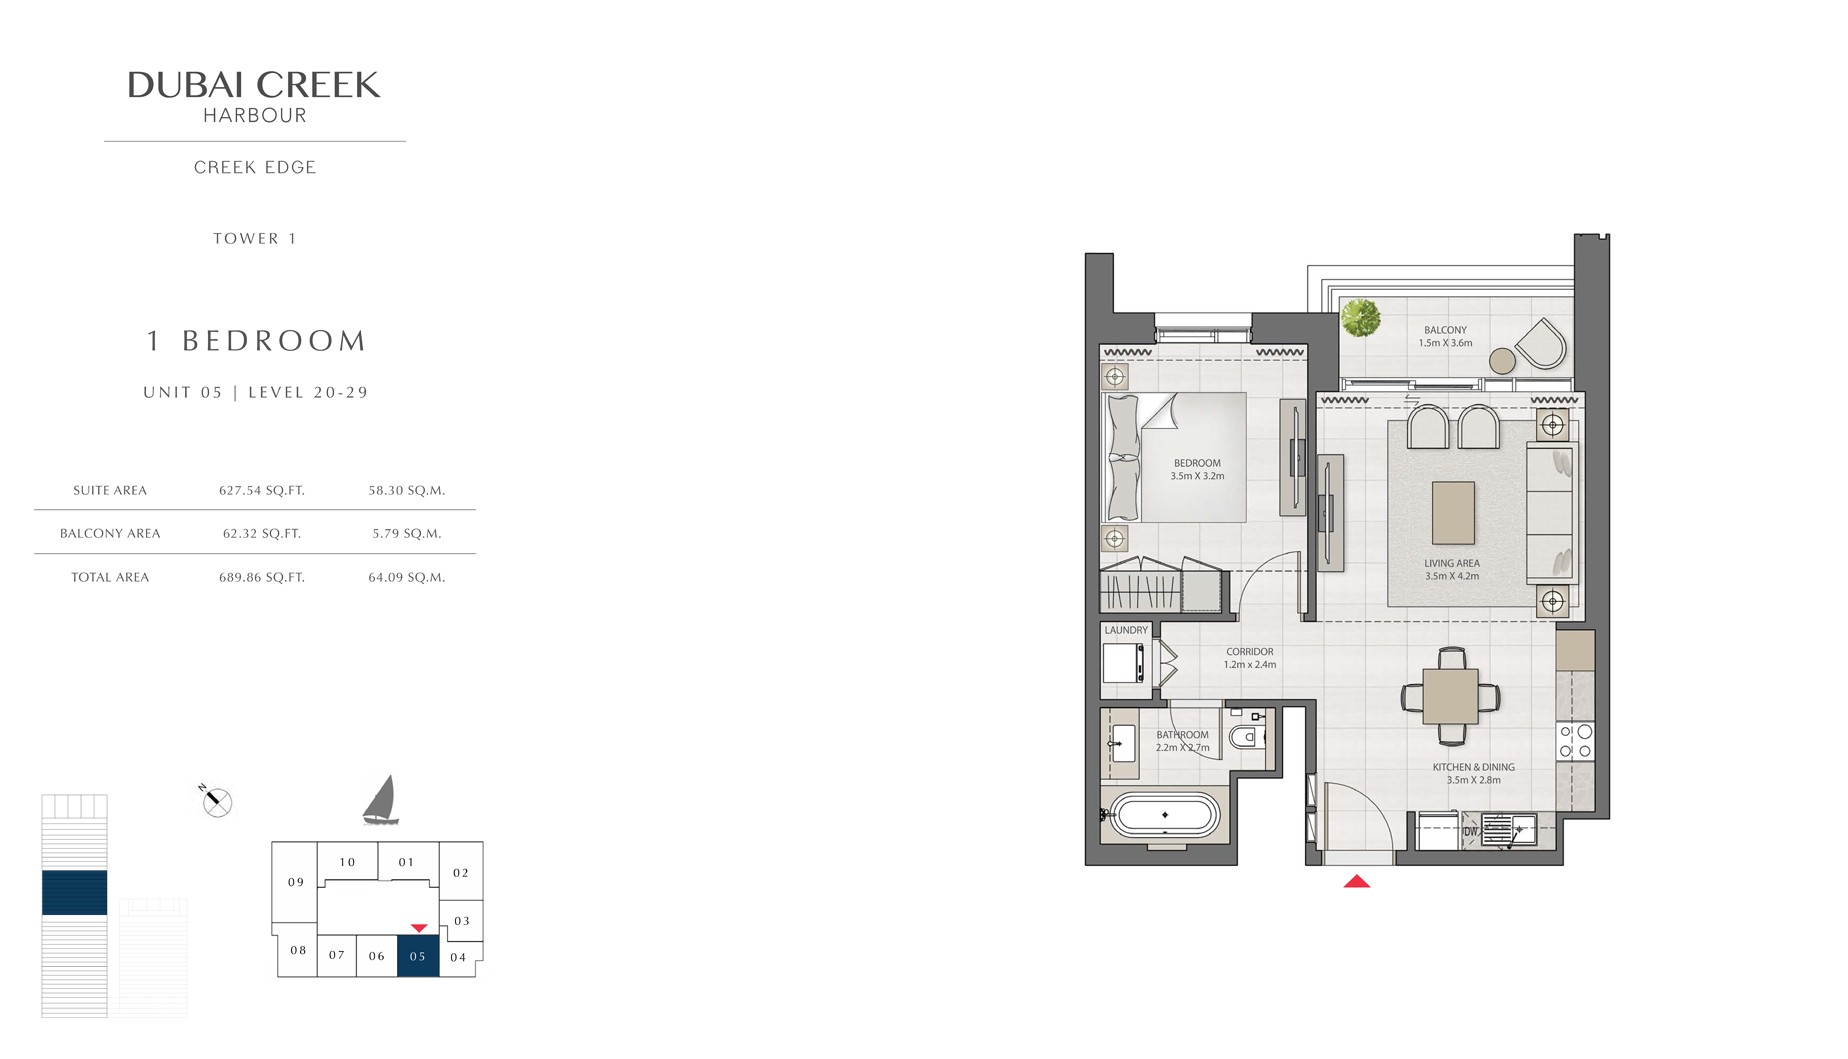 1 Bedroom Tower 1 Unit 05 Level 20-29  Size 689 sq.ft